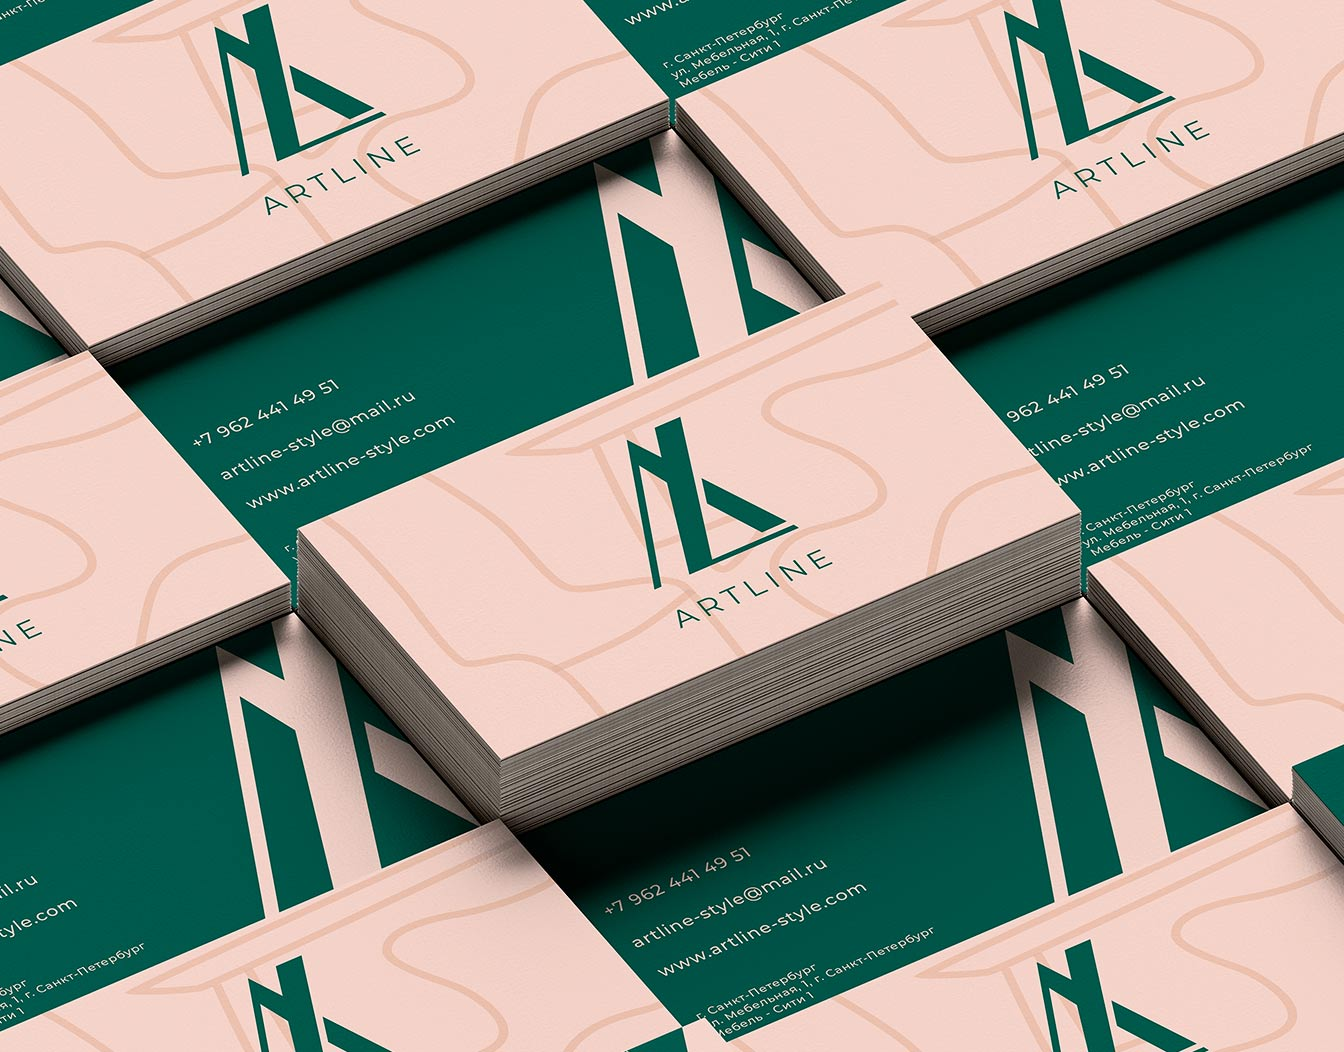 Green and brownish business cards stacked together